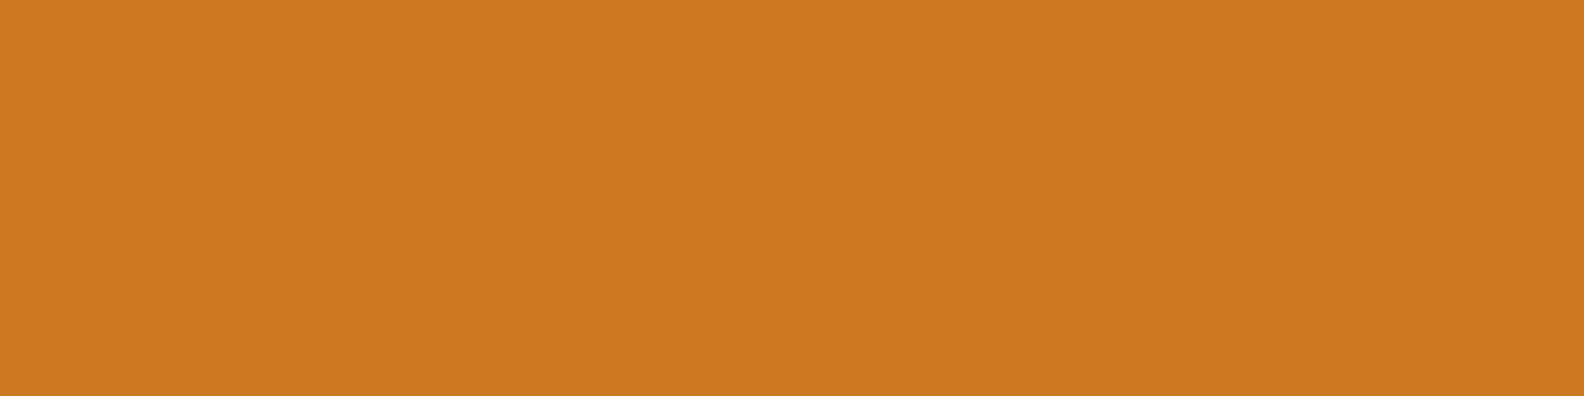 1584x396 Ochre Solid Color Background